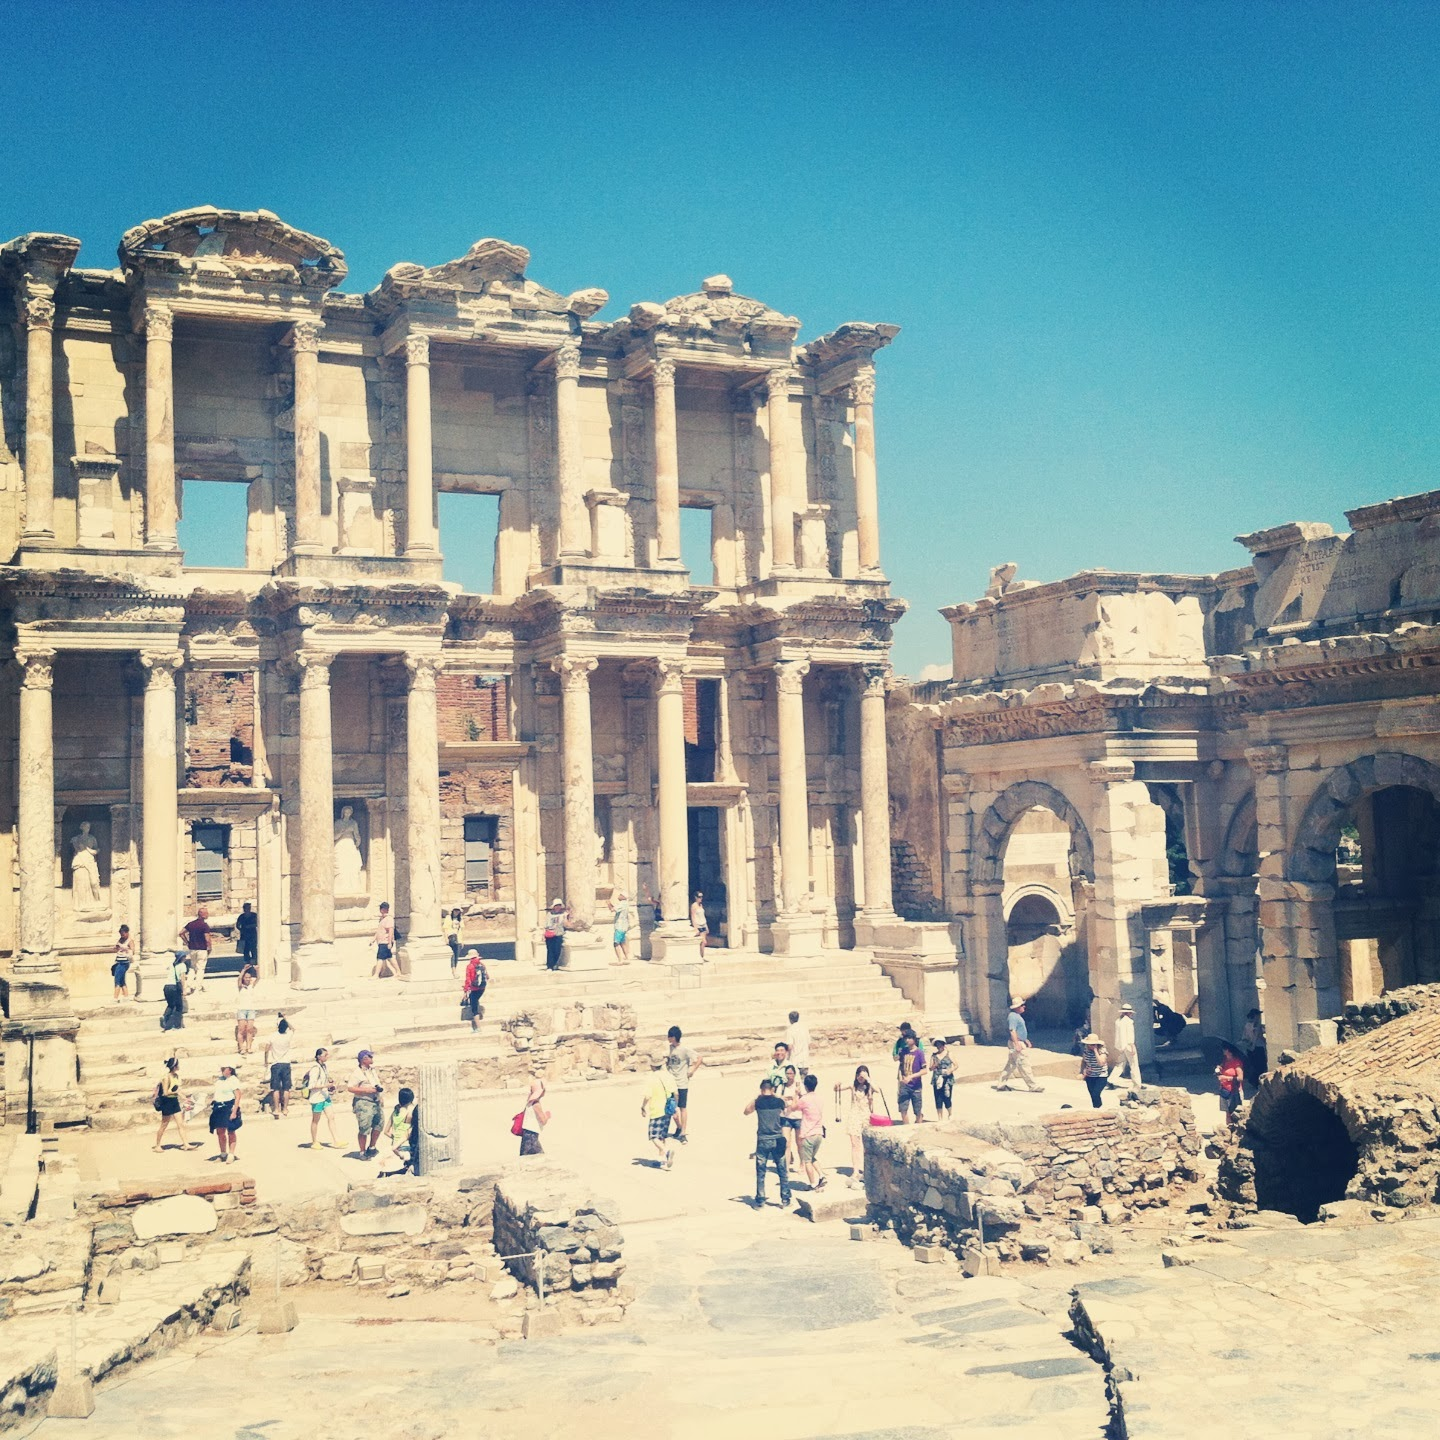 LIBRARY OF CELSUS, EFES, TURKEY